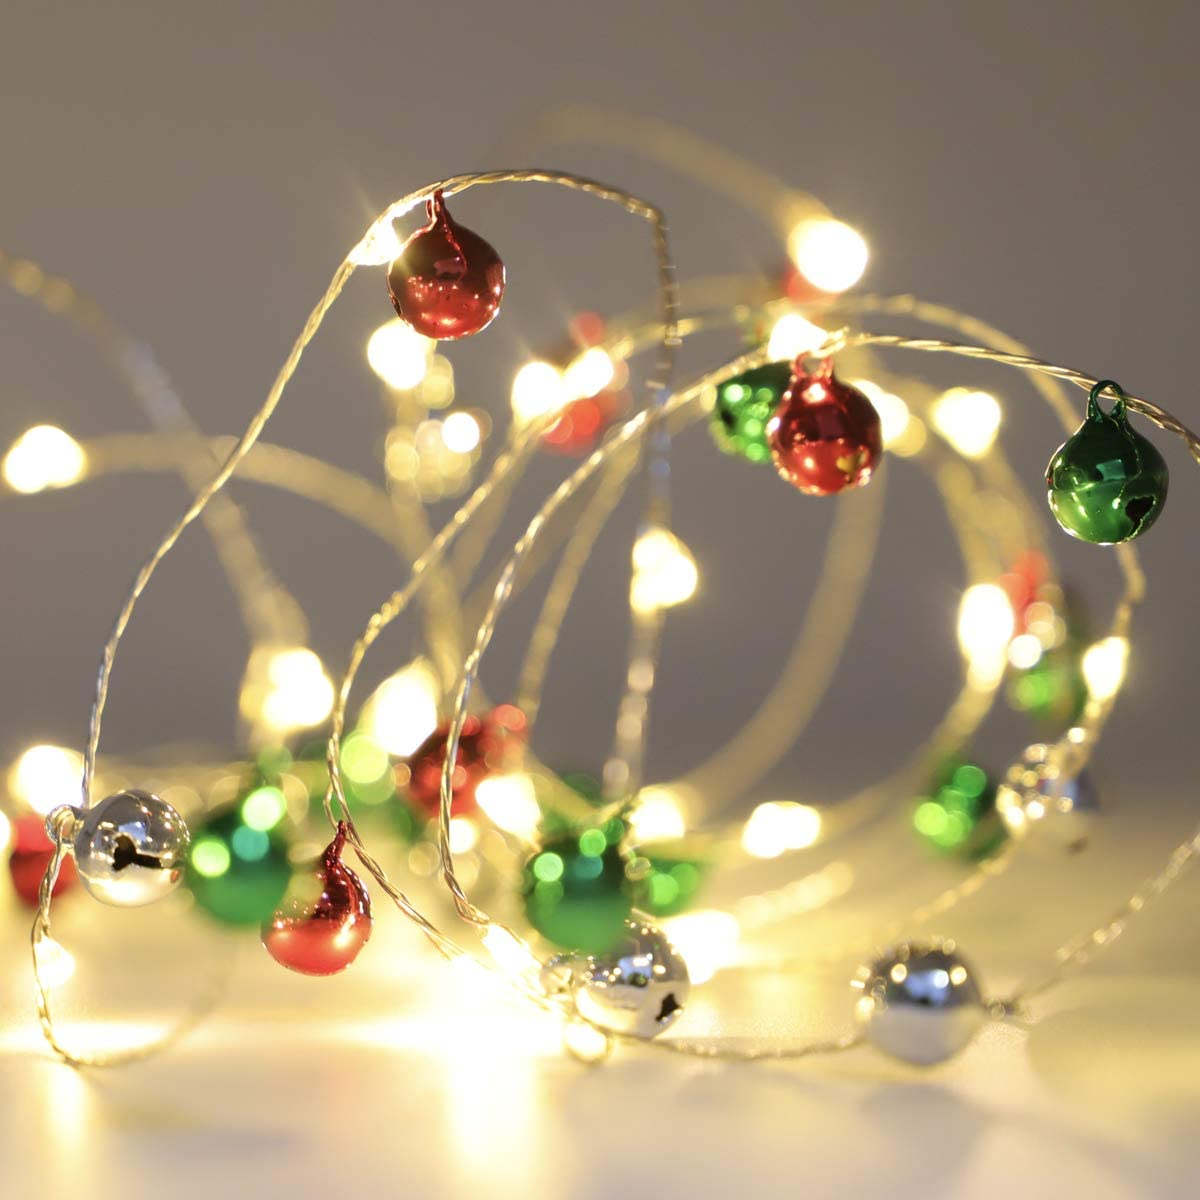 Jingle Bell String Light 10ft 60 LEDs Christmas Lights Battery Operated Fairy Lights with Remote Control for Christmas Valentine's Day Party Wedding Indoor Outdoor Gardens Bedroom Home Mantel Decor